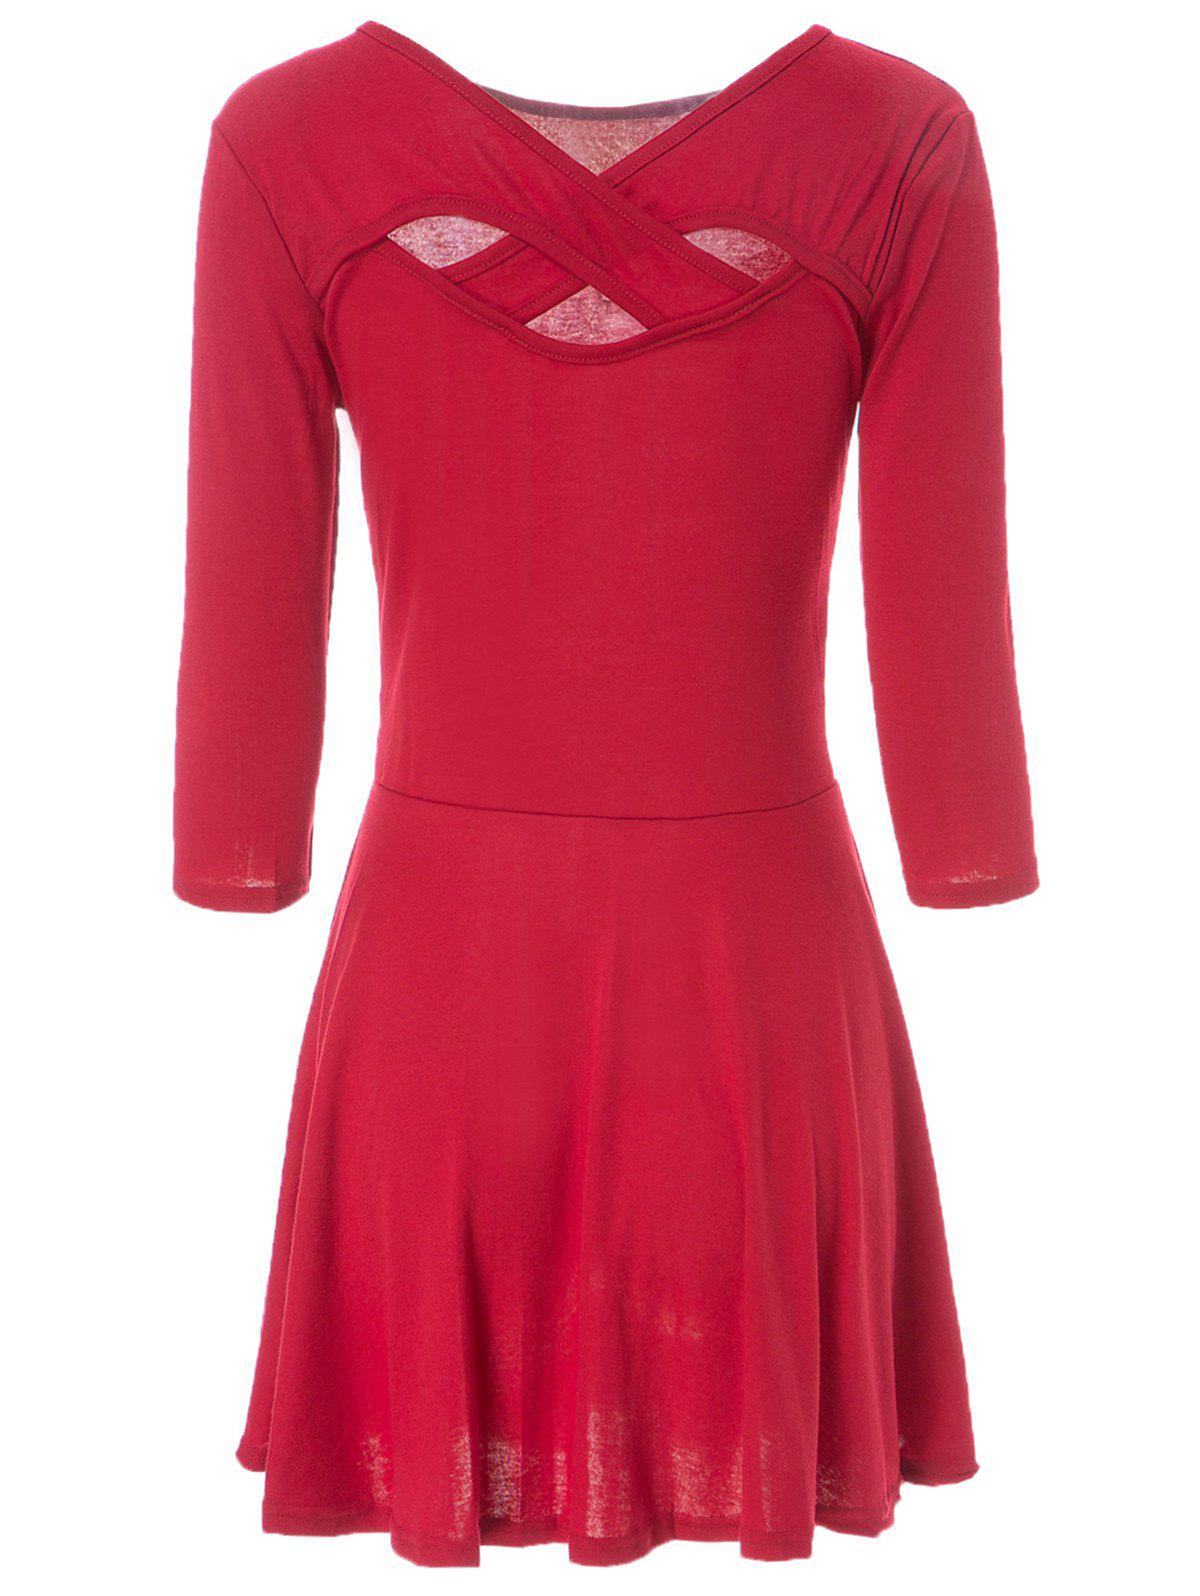 Simple V-Neck 3/4 Sleeve Solid Color Criss-Cross Hollow Out Women's Dress - WINE RED M